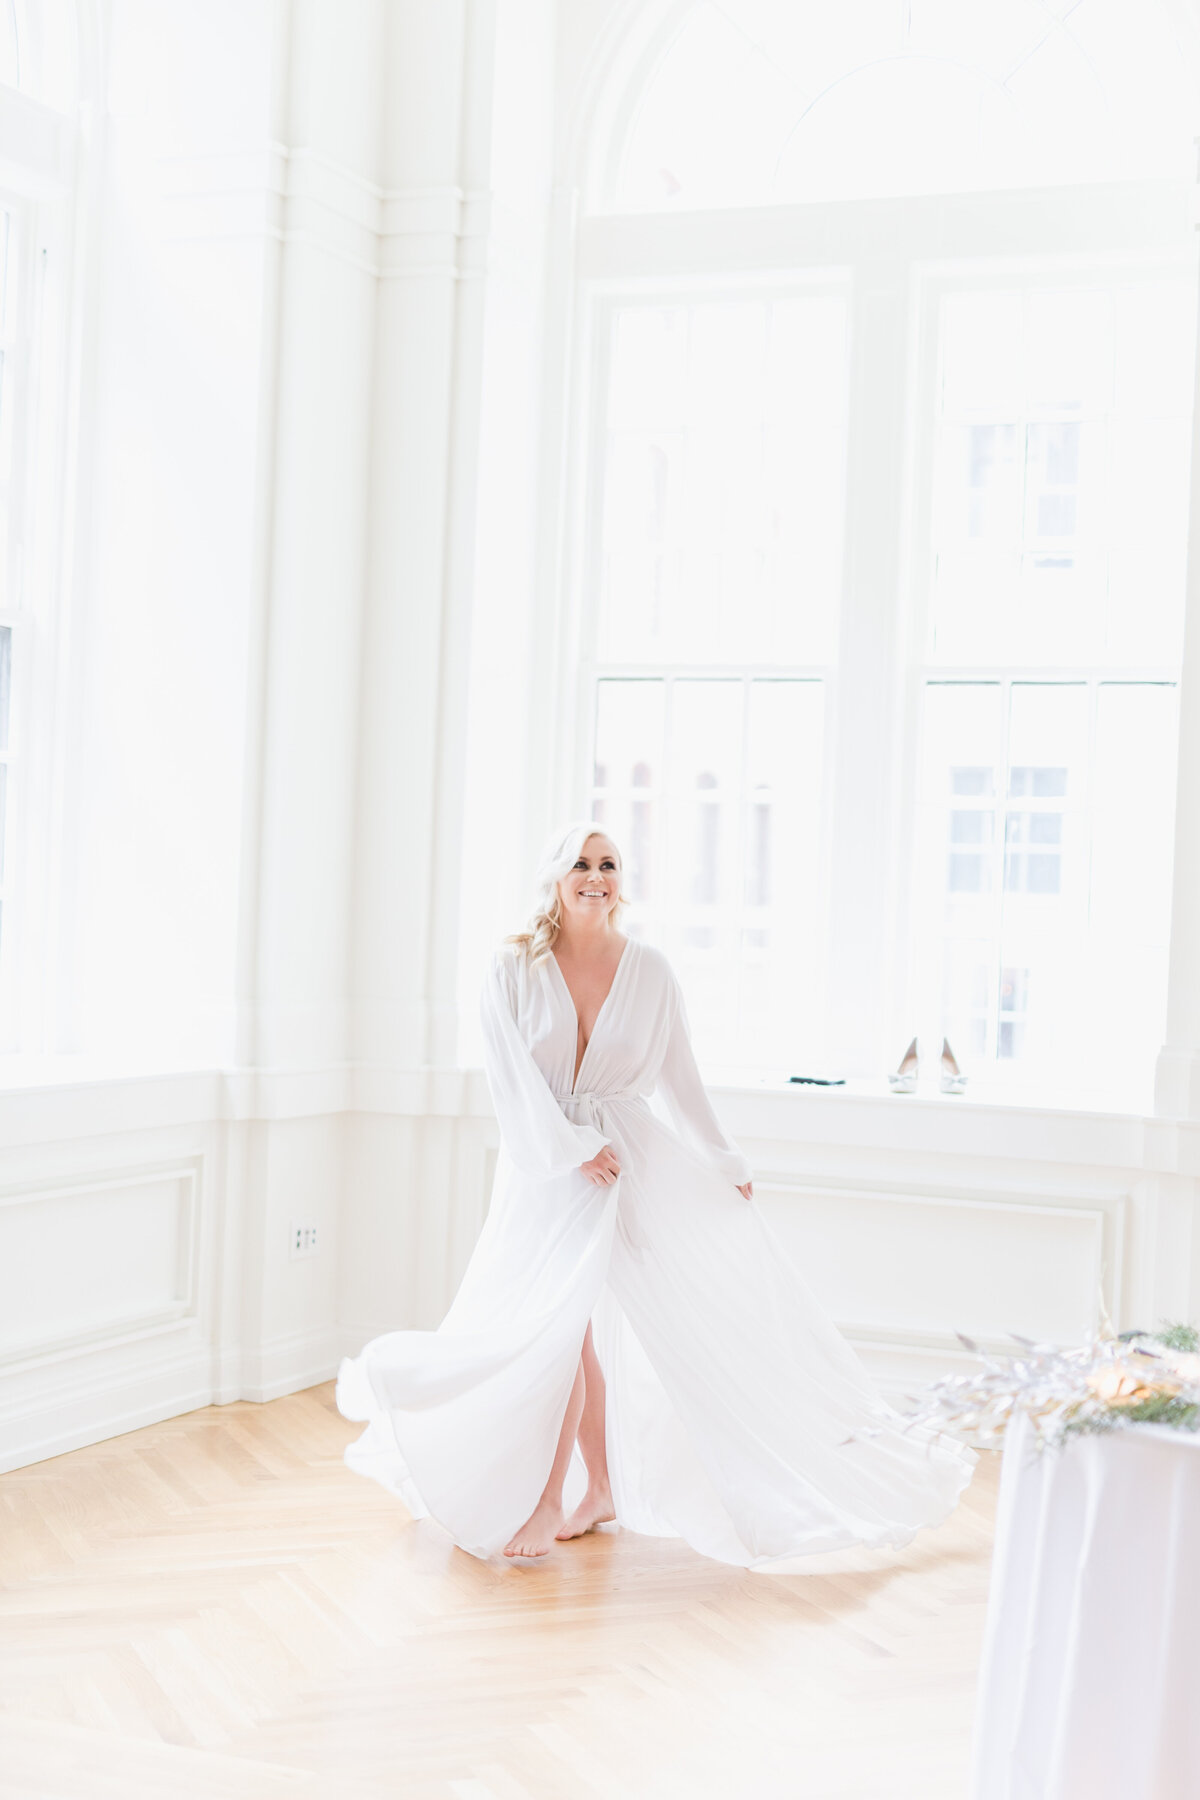 Kinspired_Nashville_StyledWeddingShoot-71